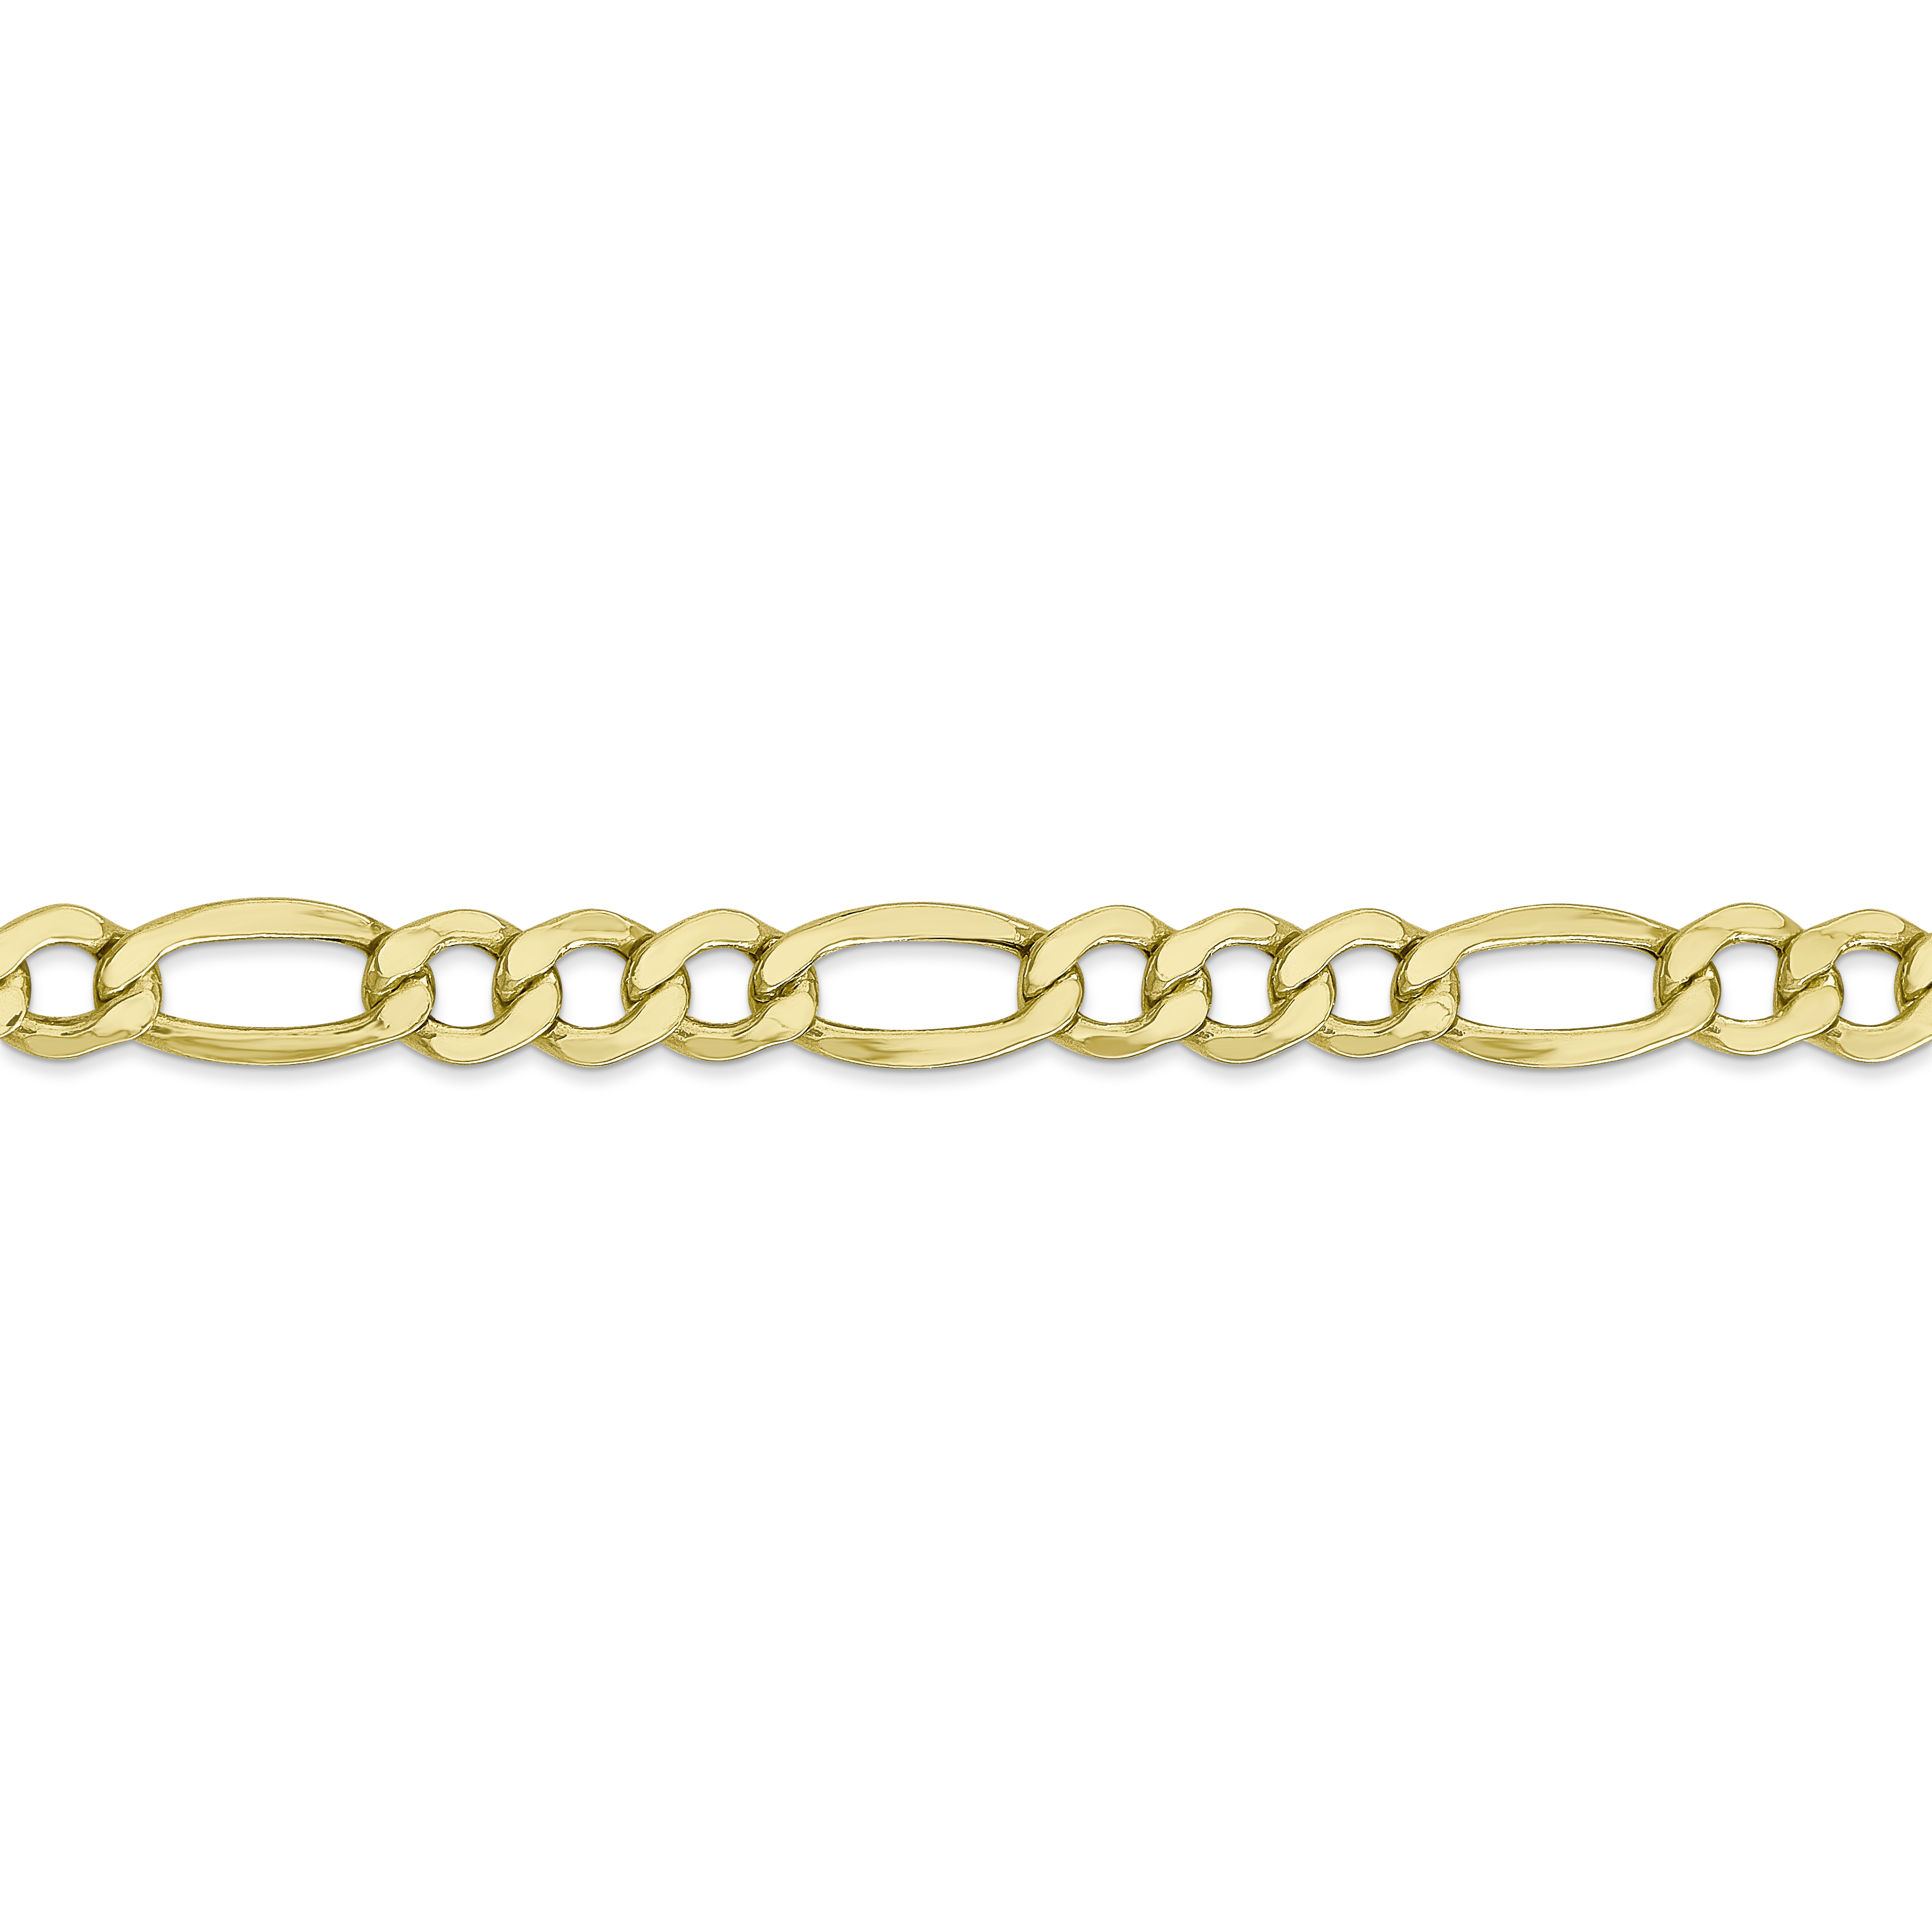 10K Yellow Gold 7.3mm Semi-Solid Figaro Chain 24 IN - image 3 of 5